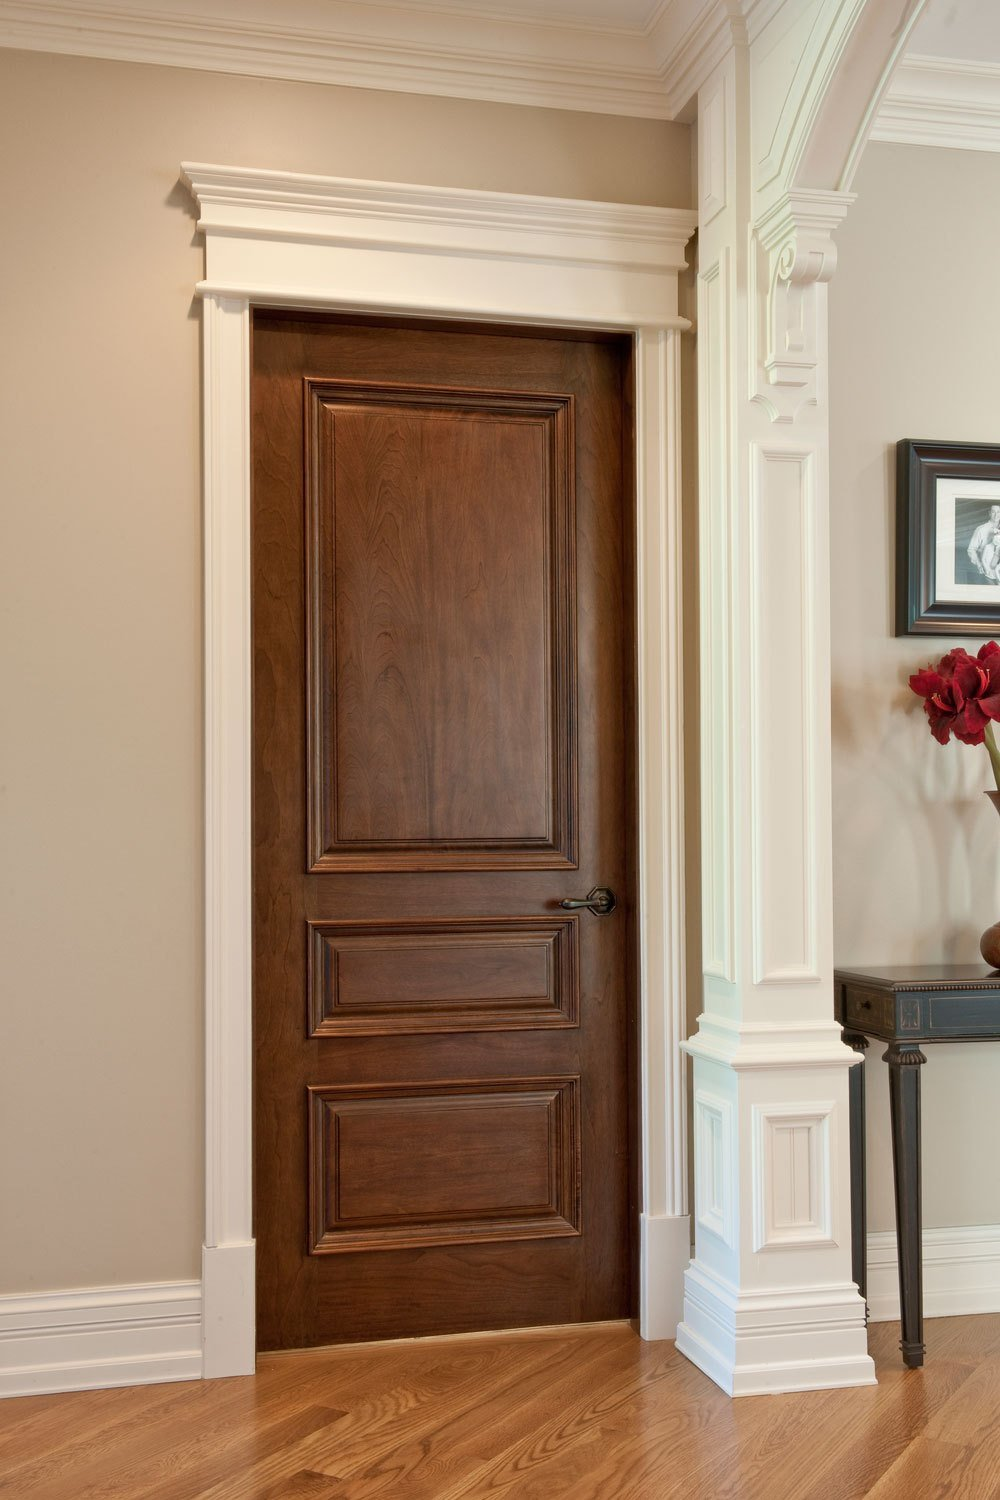 Best Interior Door Custom Single Solid Wood With Walnut With Pictures